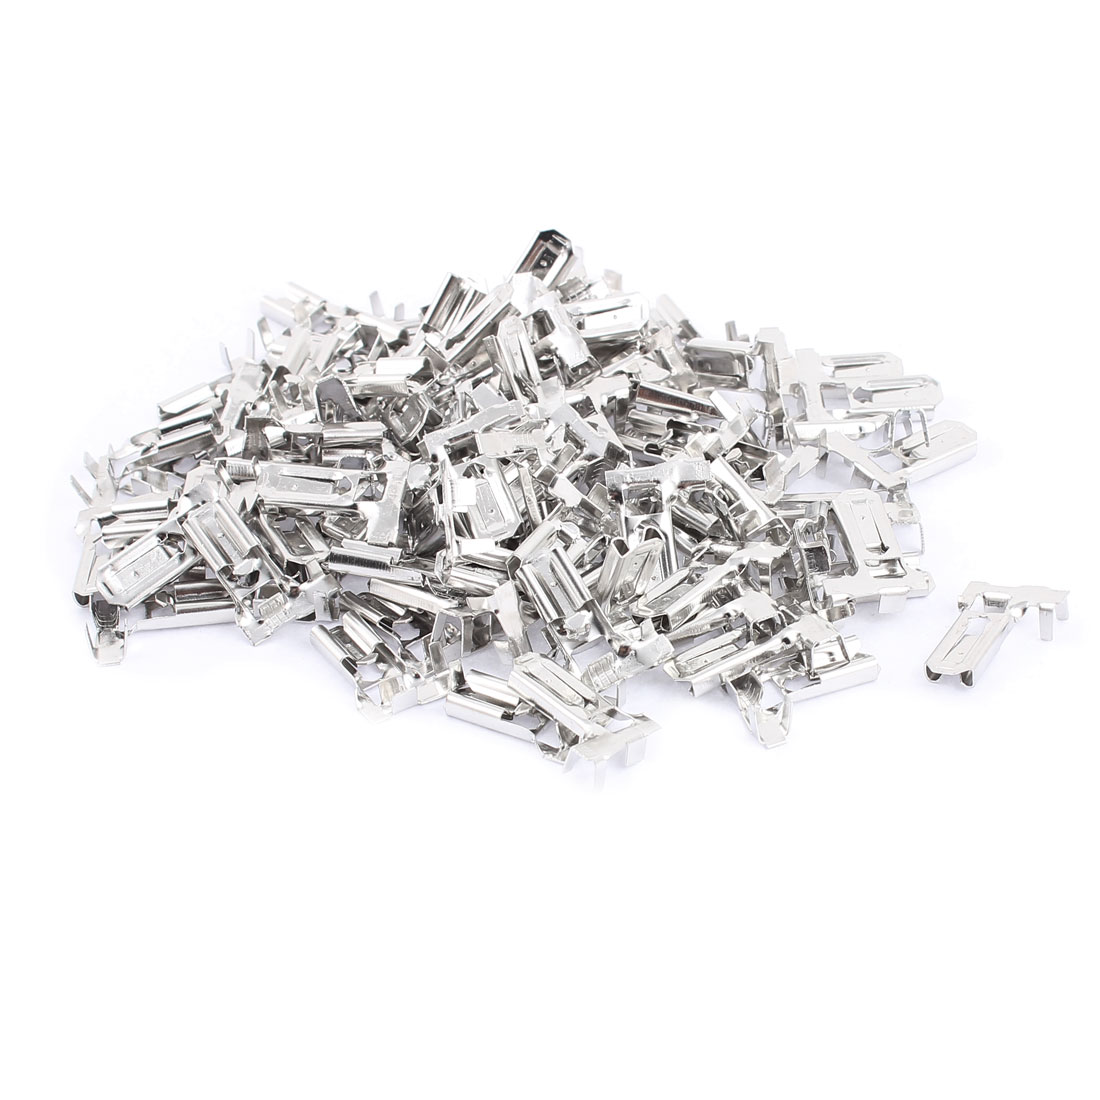 100 Pcs 90 Degree 6.3mm Stud Width Female Locking Wire Terminal Connector